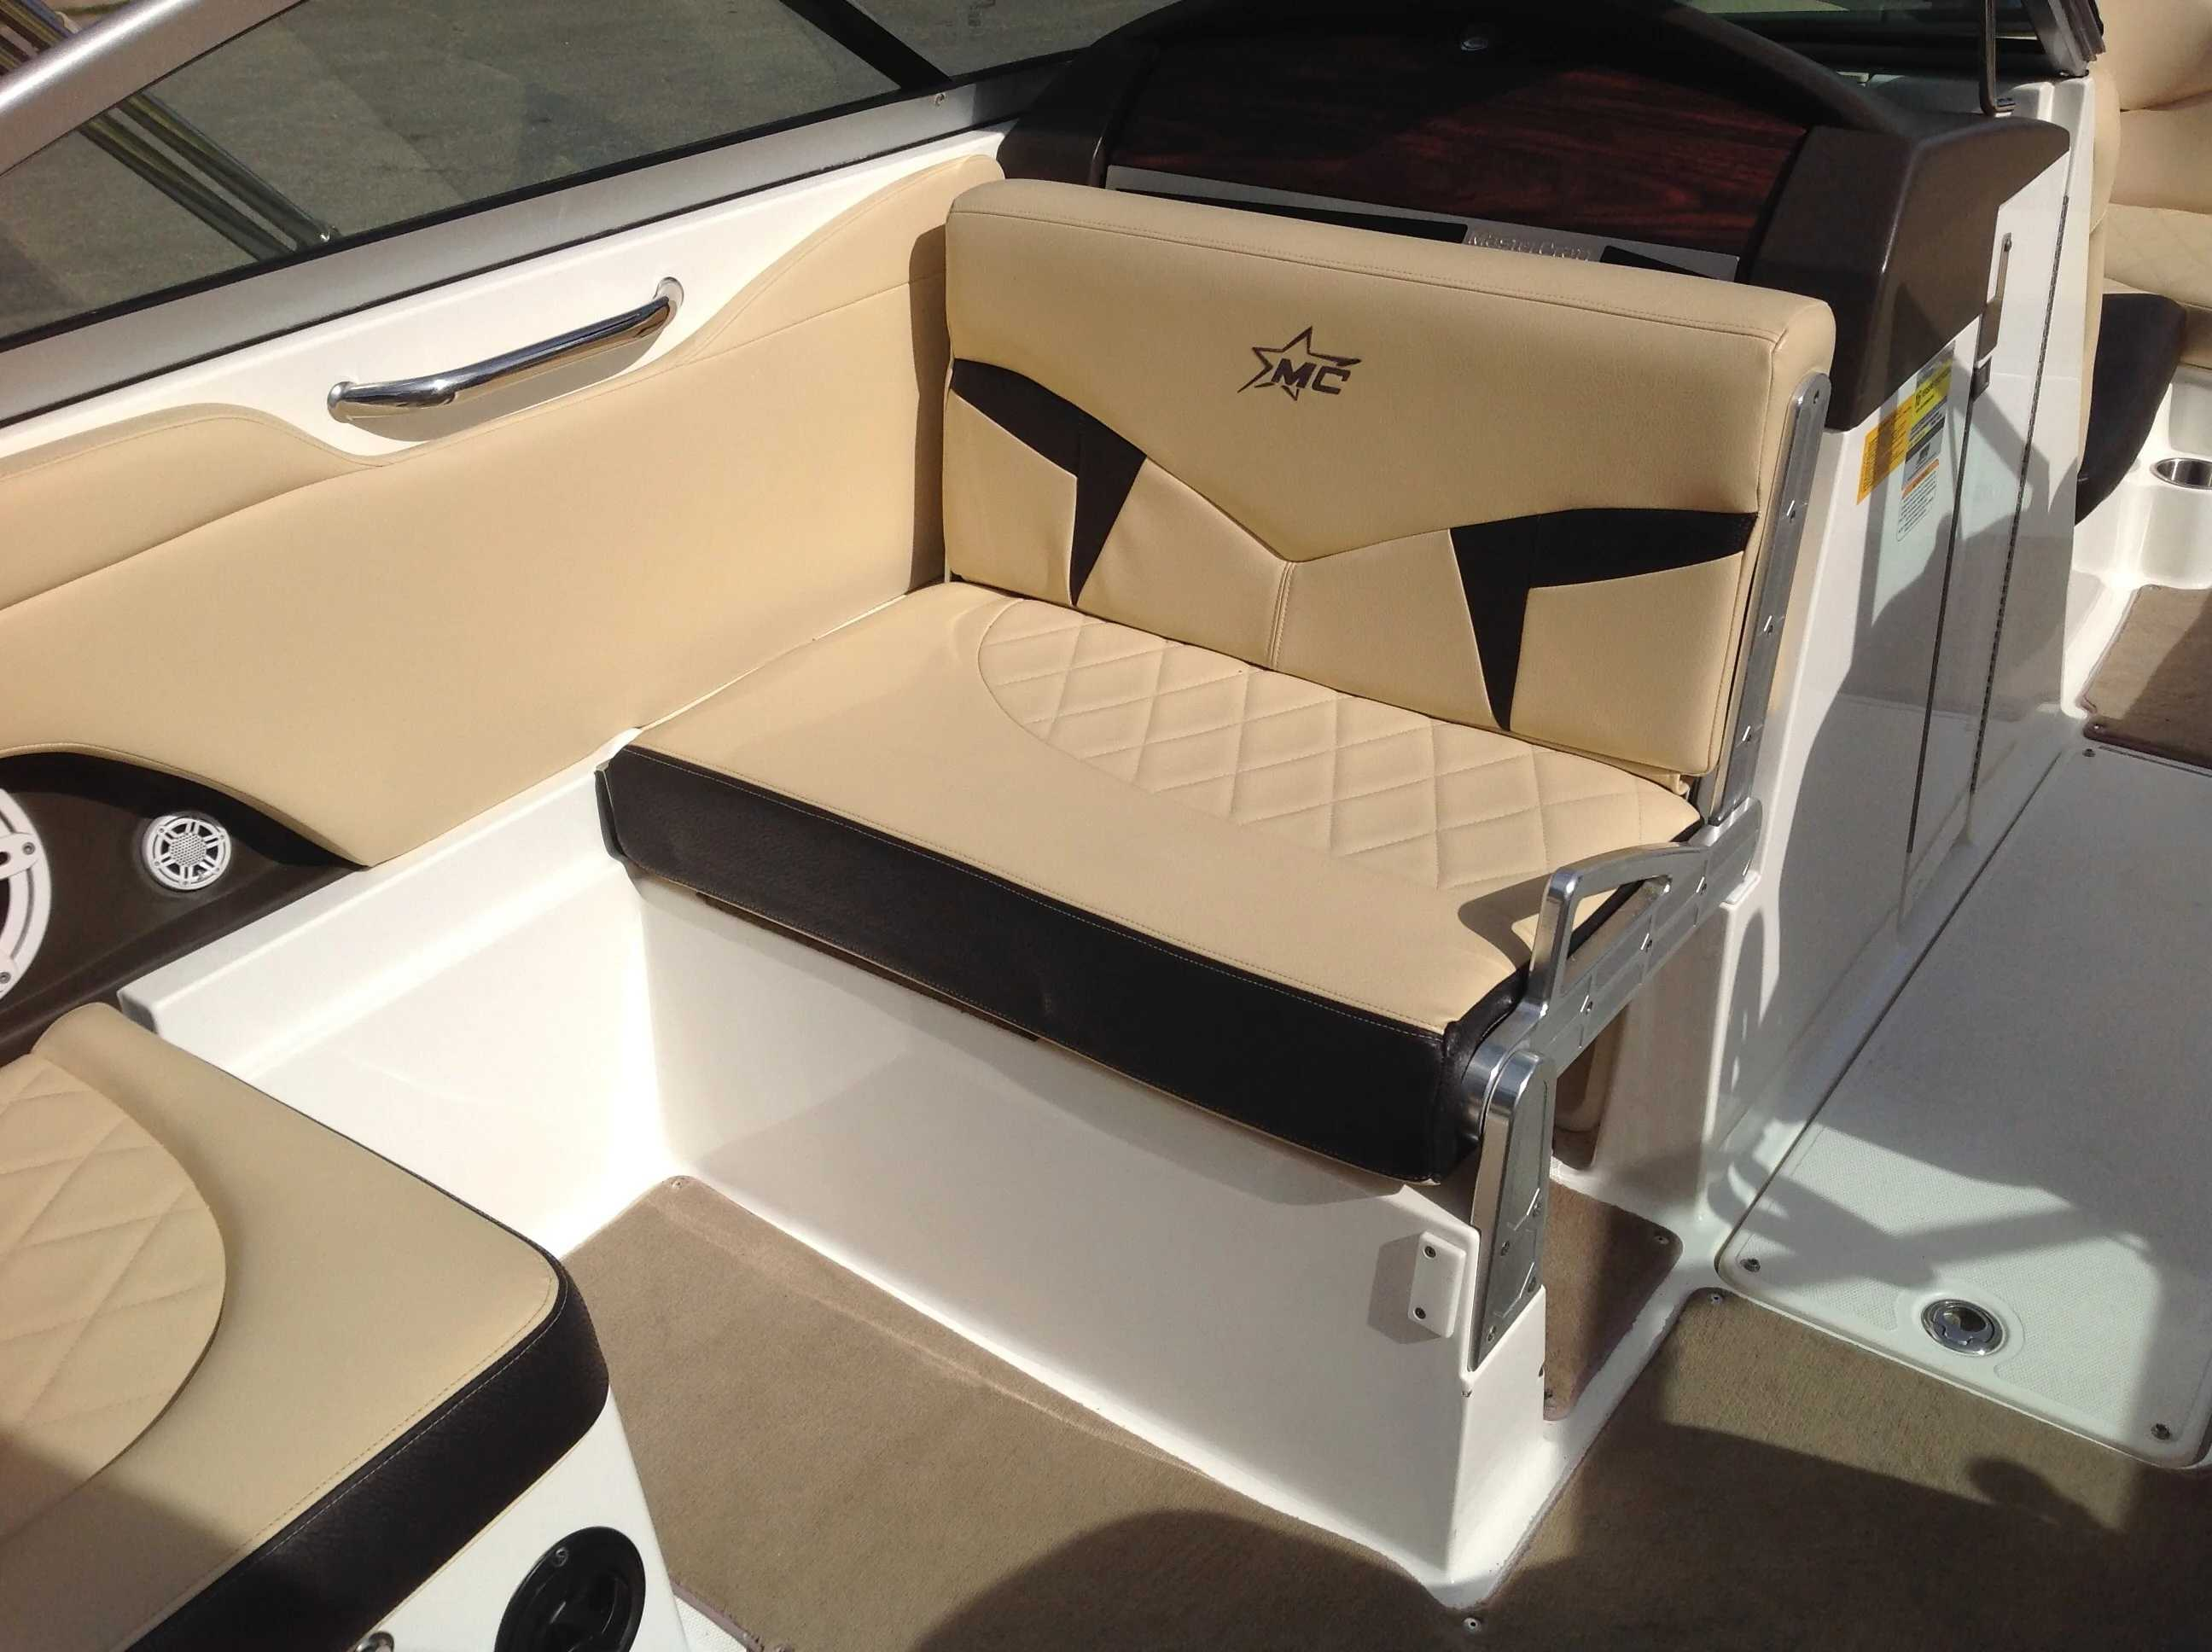 2010 Mastercraft boat for sale, model of the boat is Maristar 235 & Image # 11 of 16